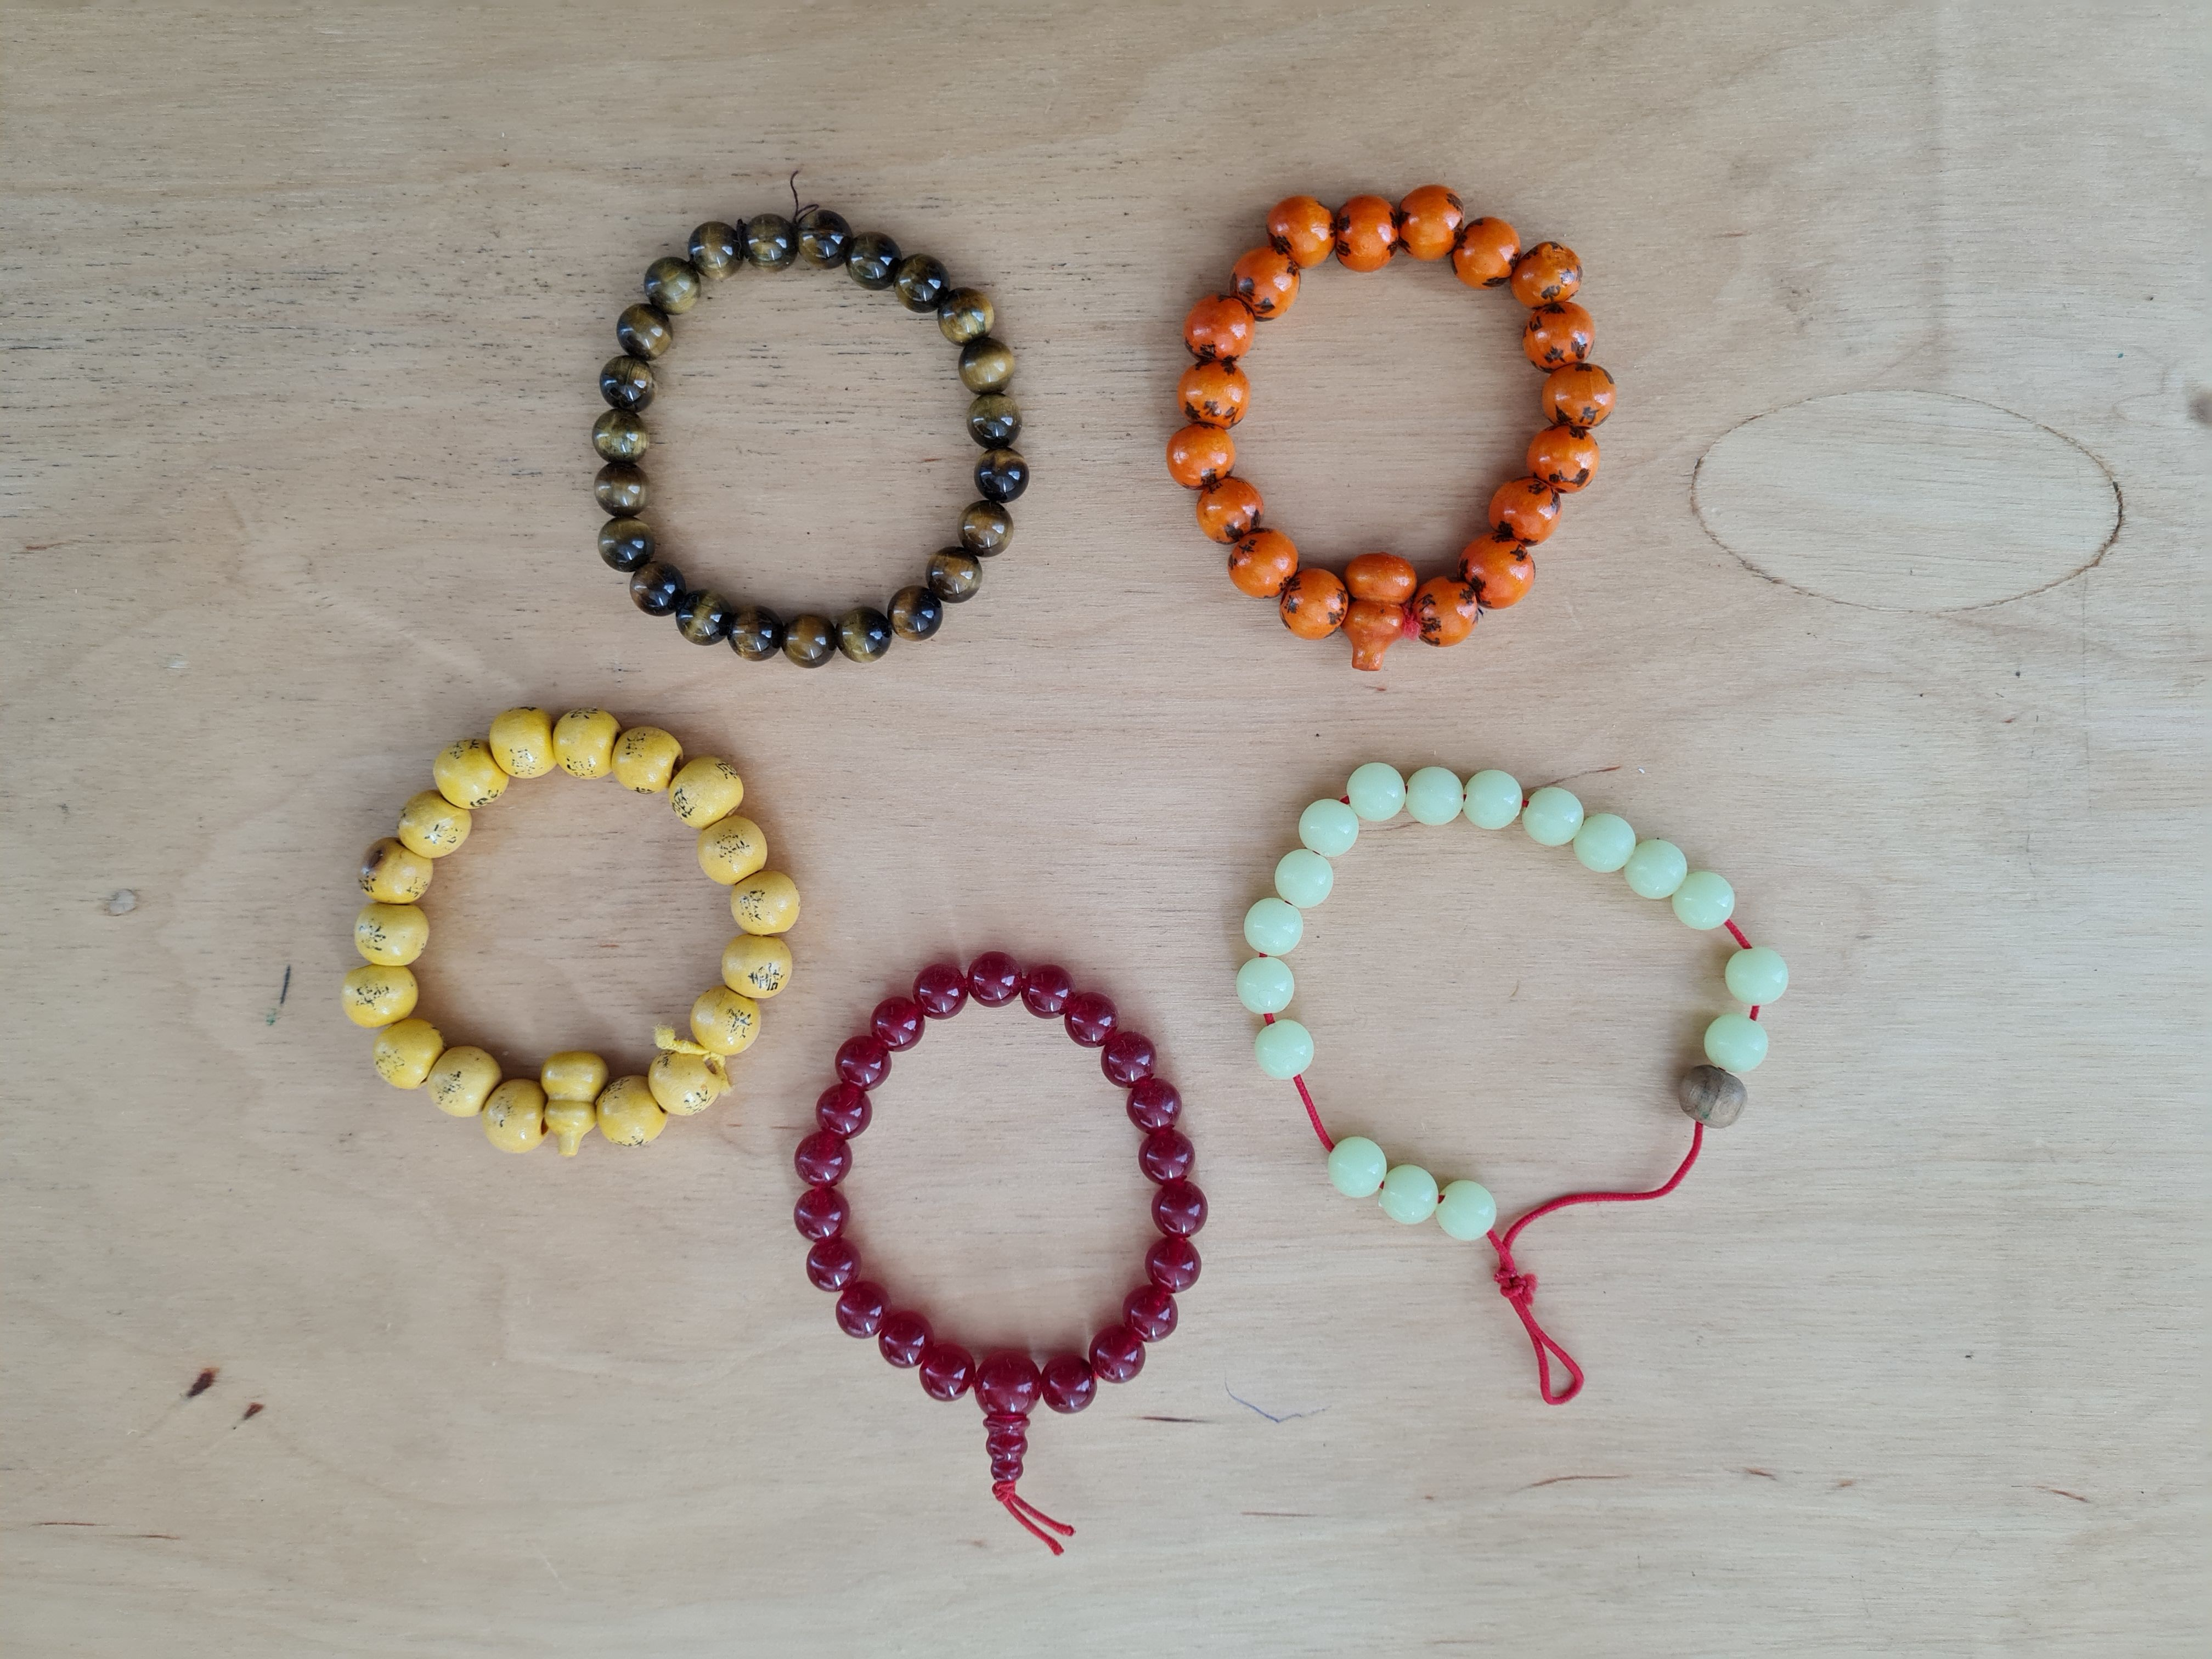 various beaded bracelets laid out on a table